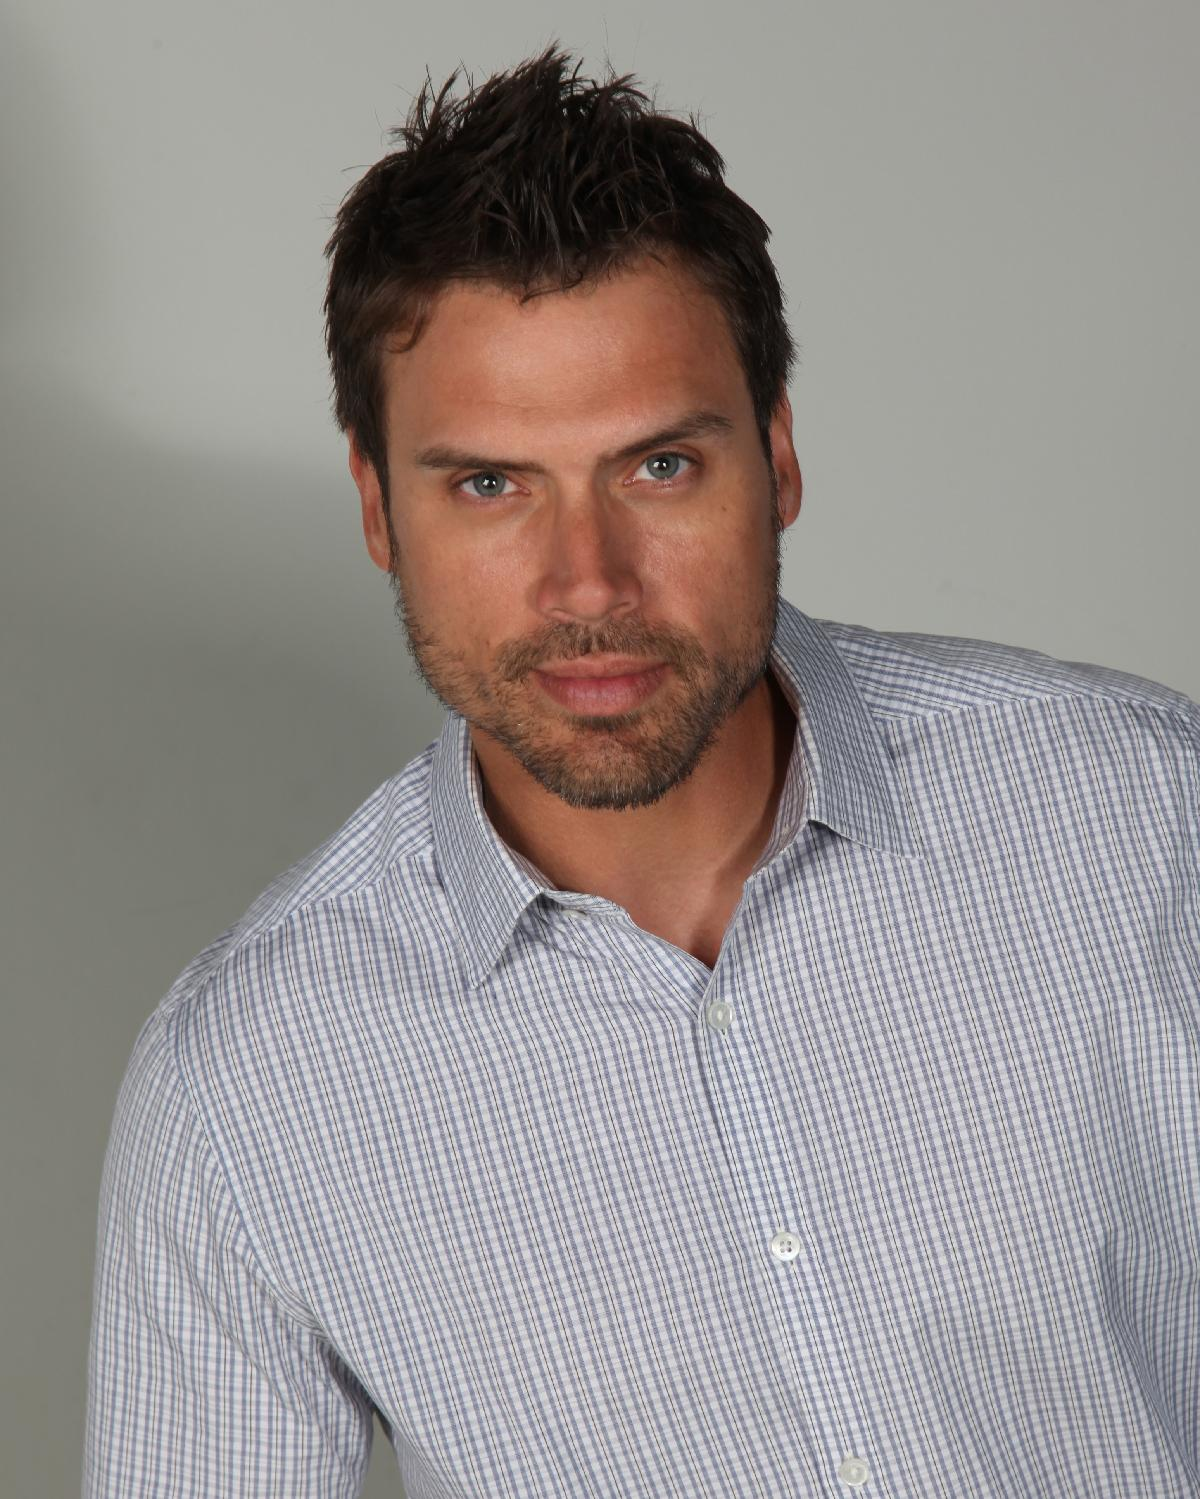 joshua morrow wifejoshua morrow age, joshua morrow wife, joshua morrow net worth, joshua morrow family, joshua morrow twitter, joshua morrow parents, joshua morrow bio, joshua morrow young, joshua morrow height, joshua morrow band, joshua morrow married, joshua morrow instagram, joshua morrow facebook, joshua morrow young and restless, joshua morrow daughter, joshua morrow actor, joshua morrow spouse, joshua morrow movies, joshua morrow oklahoma, joshua morrow home